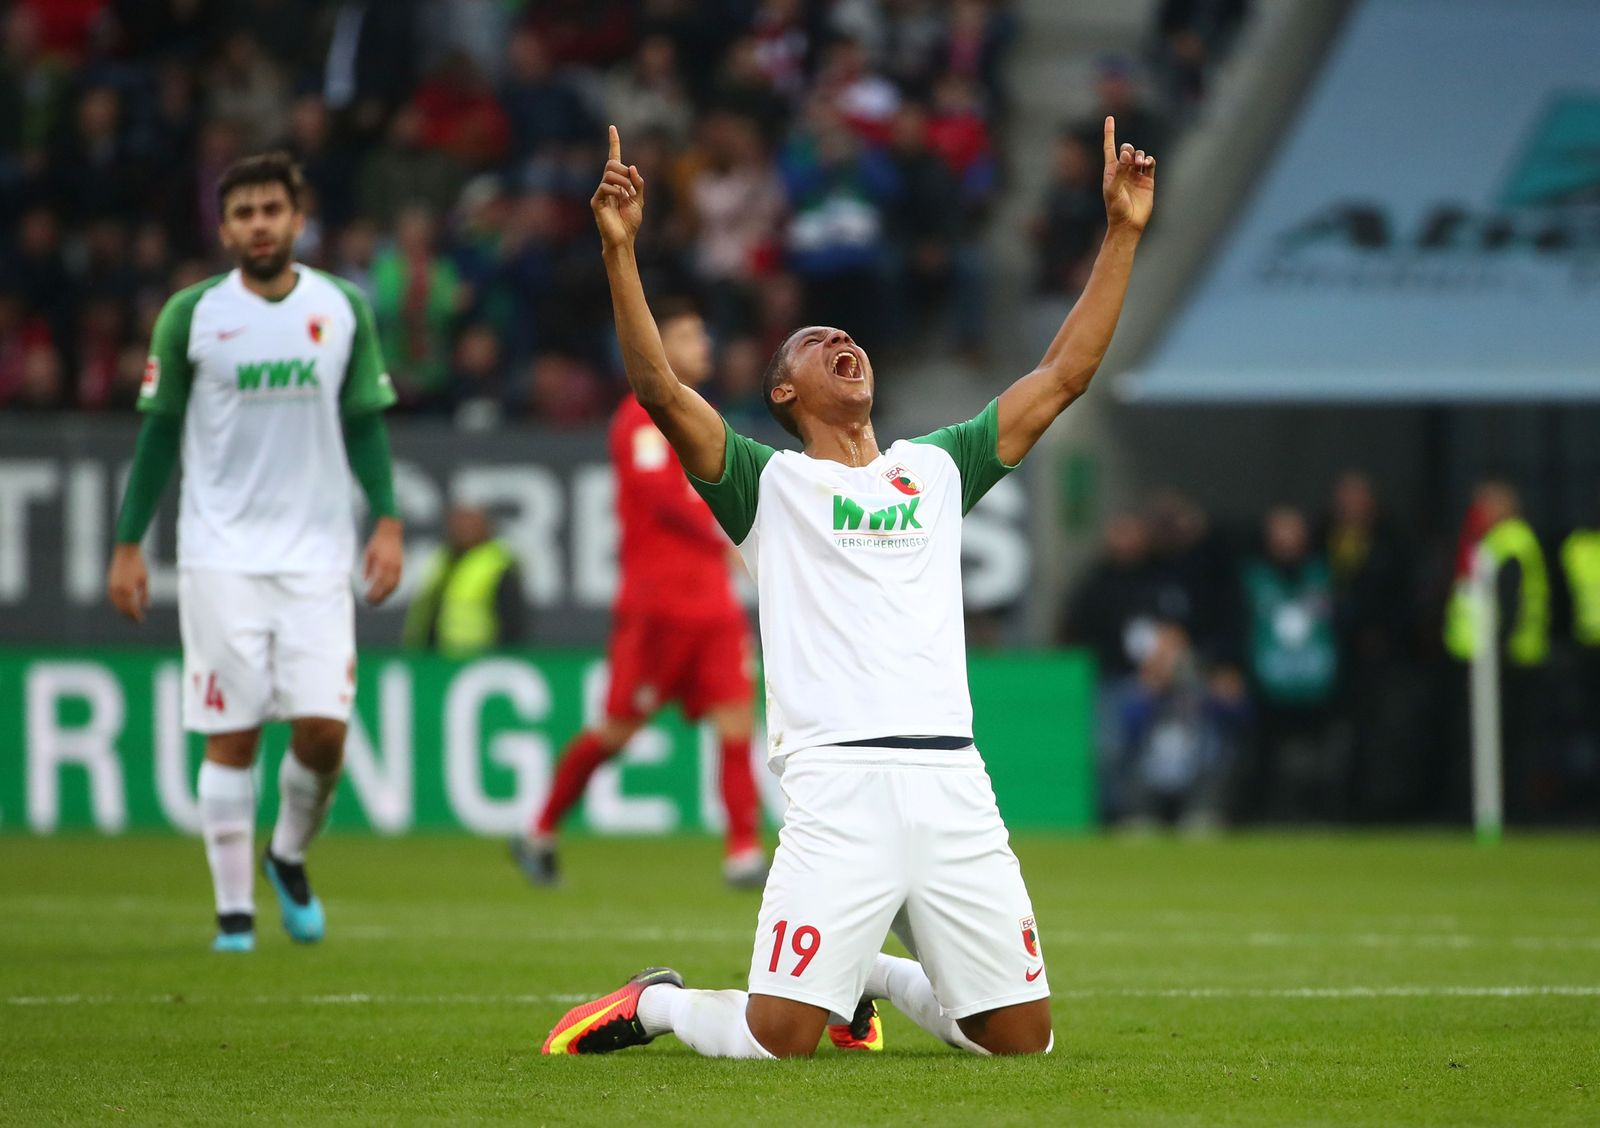 SOCCER-GERMANY-AUG-BAY/REPORT